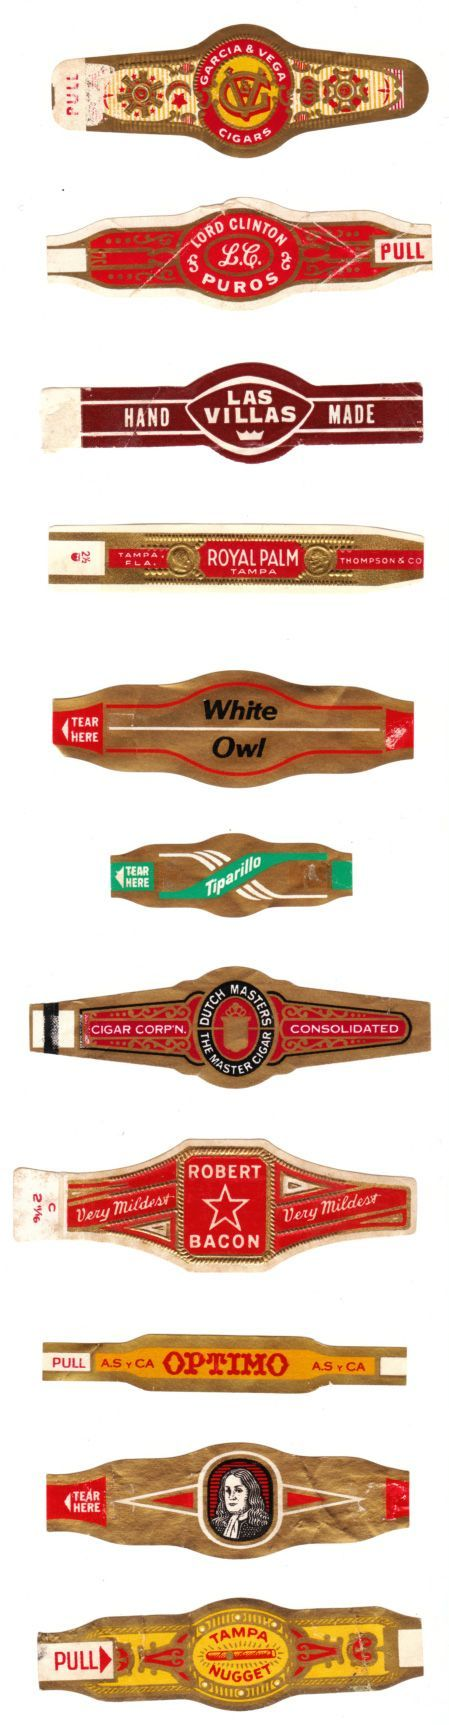 Google Image Result for http://flappergirlcreations.files.wordpress.com/2011/01/cigars.jpg%3Fw%3D450: